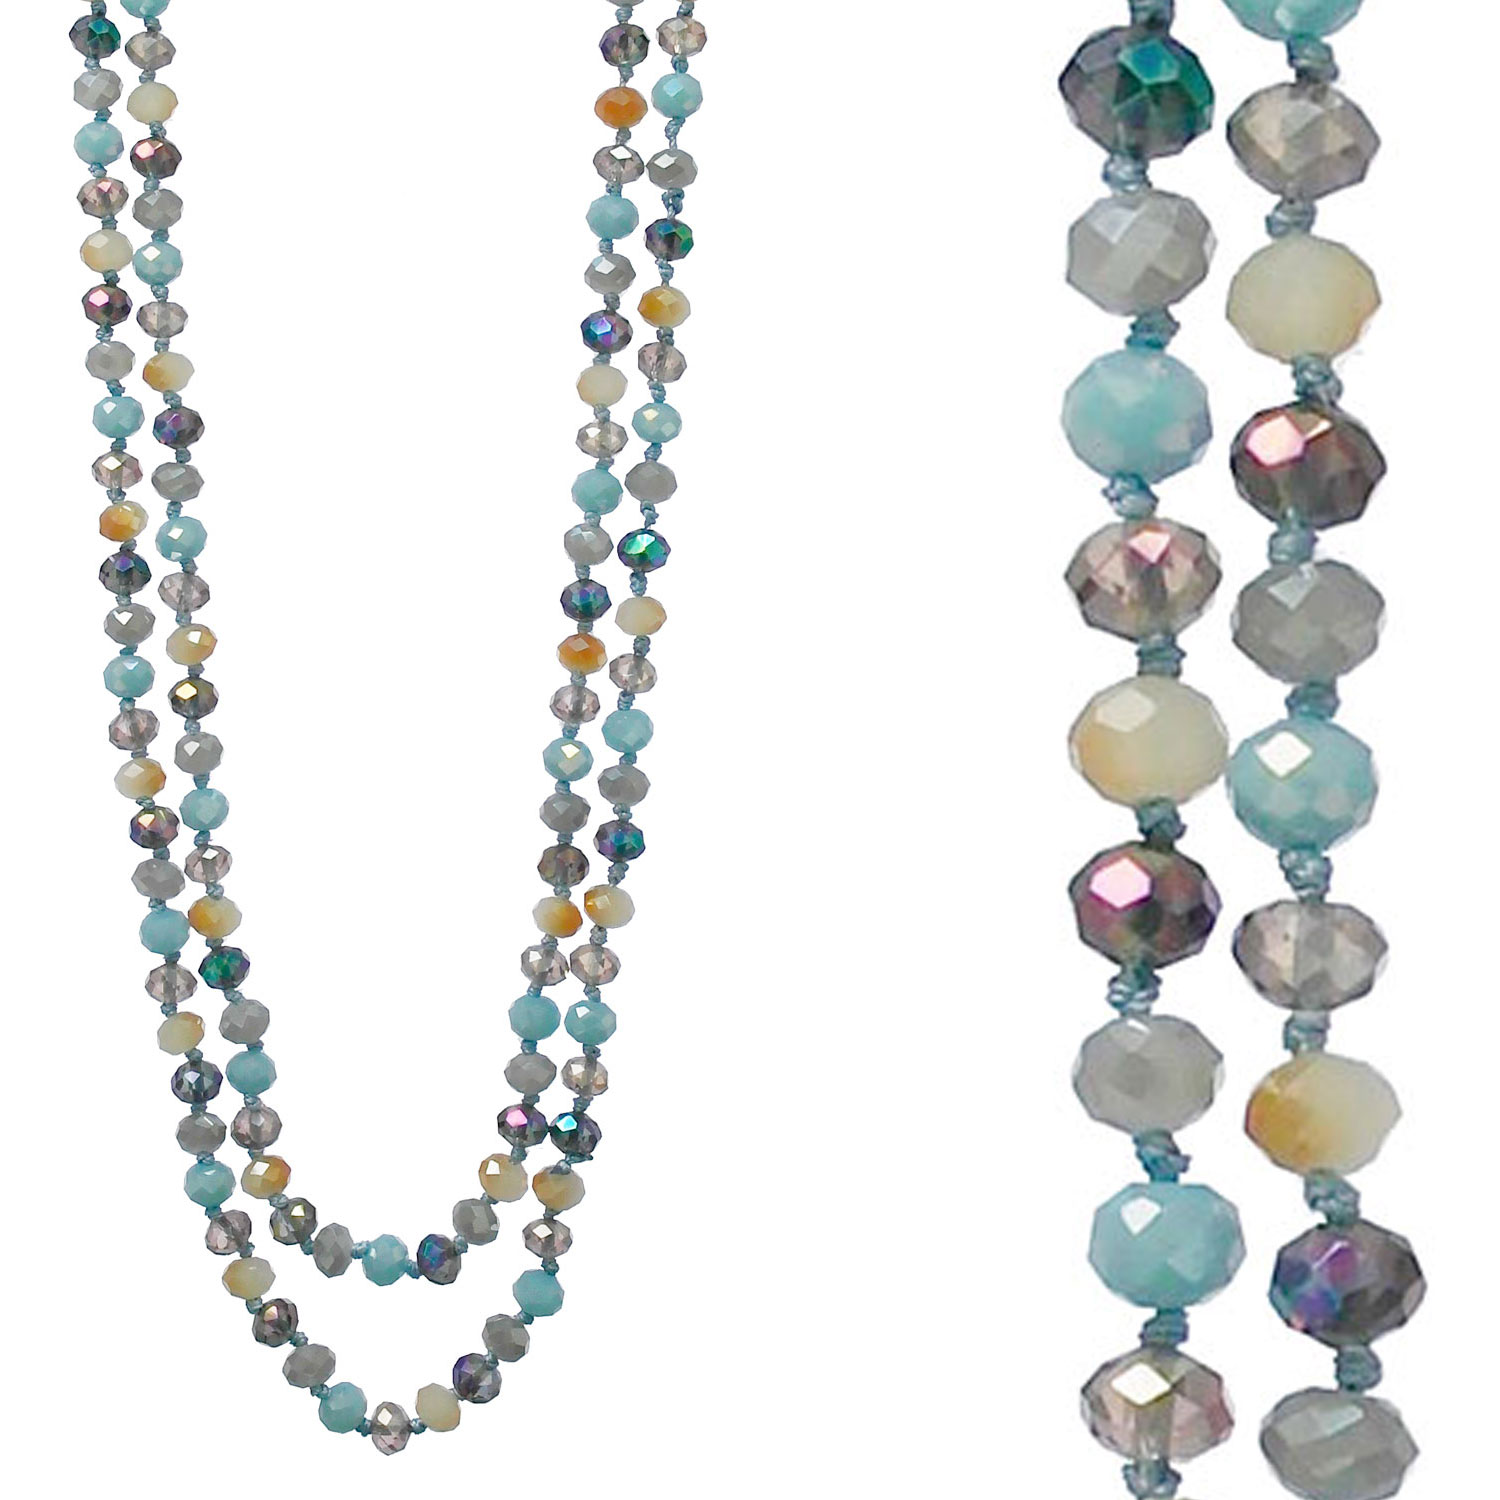 Necklaces < 8mm-60in Beads  < Wholesale Necklace